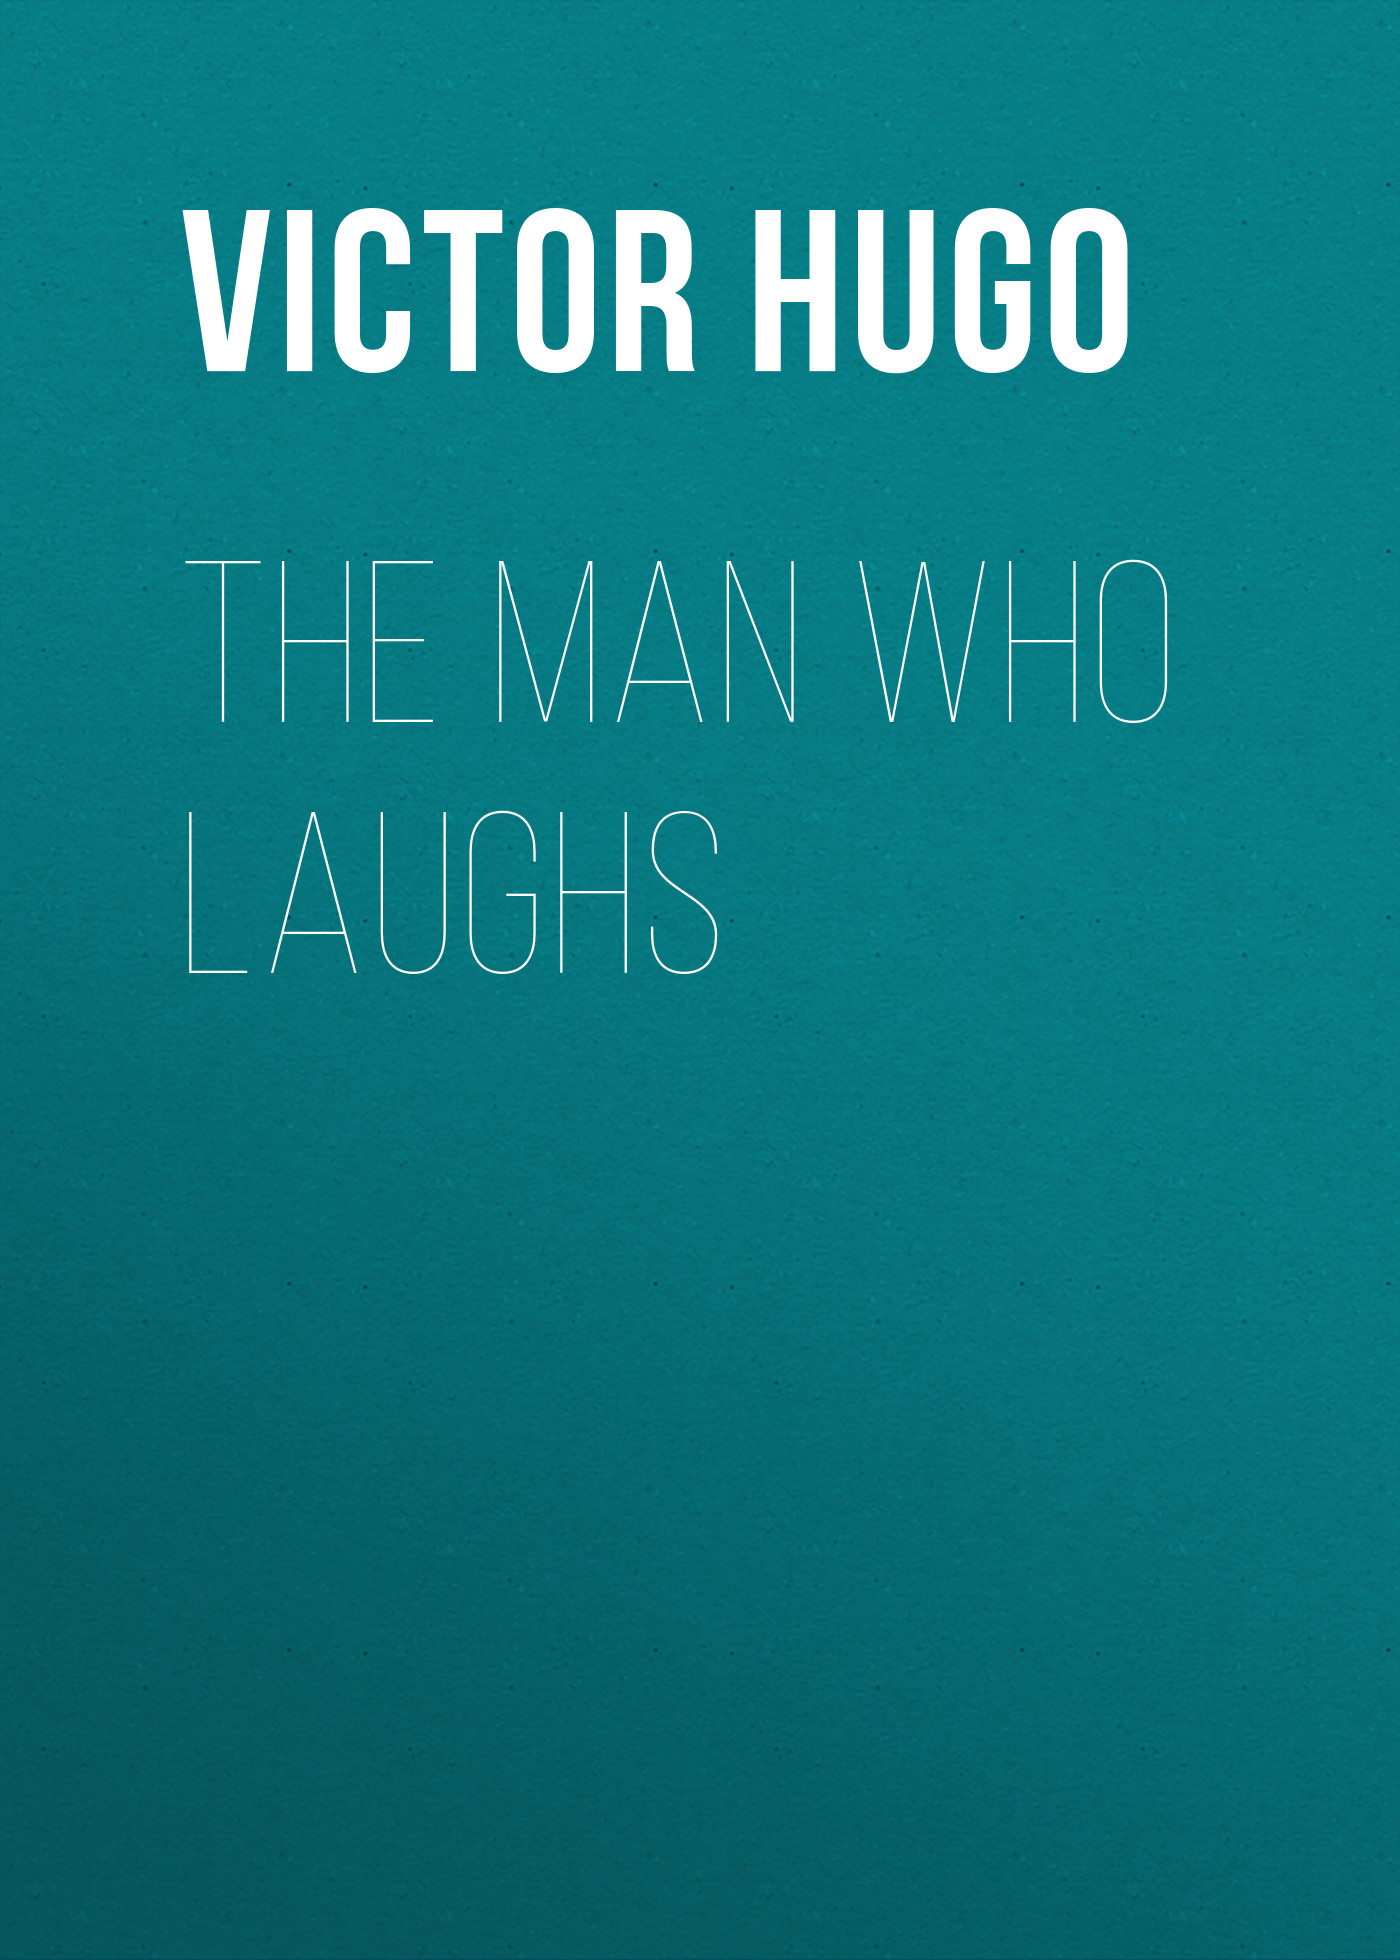 Виктор Мари Гюго The Man Who Laughs h c o huss the man who laughs volume 2